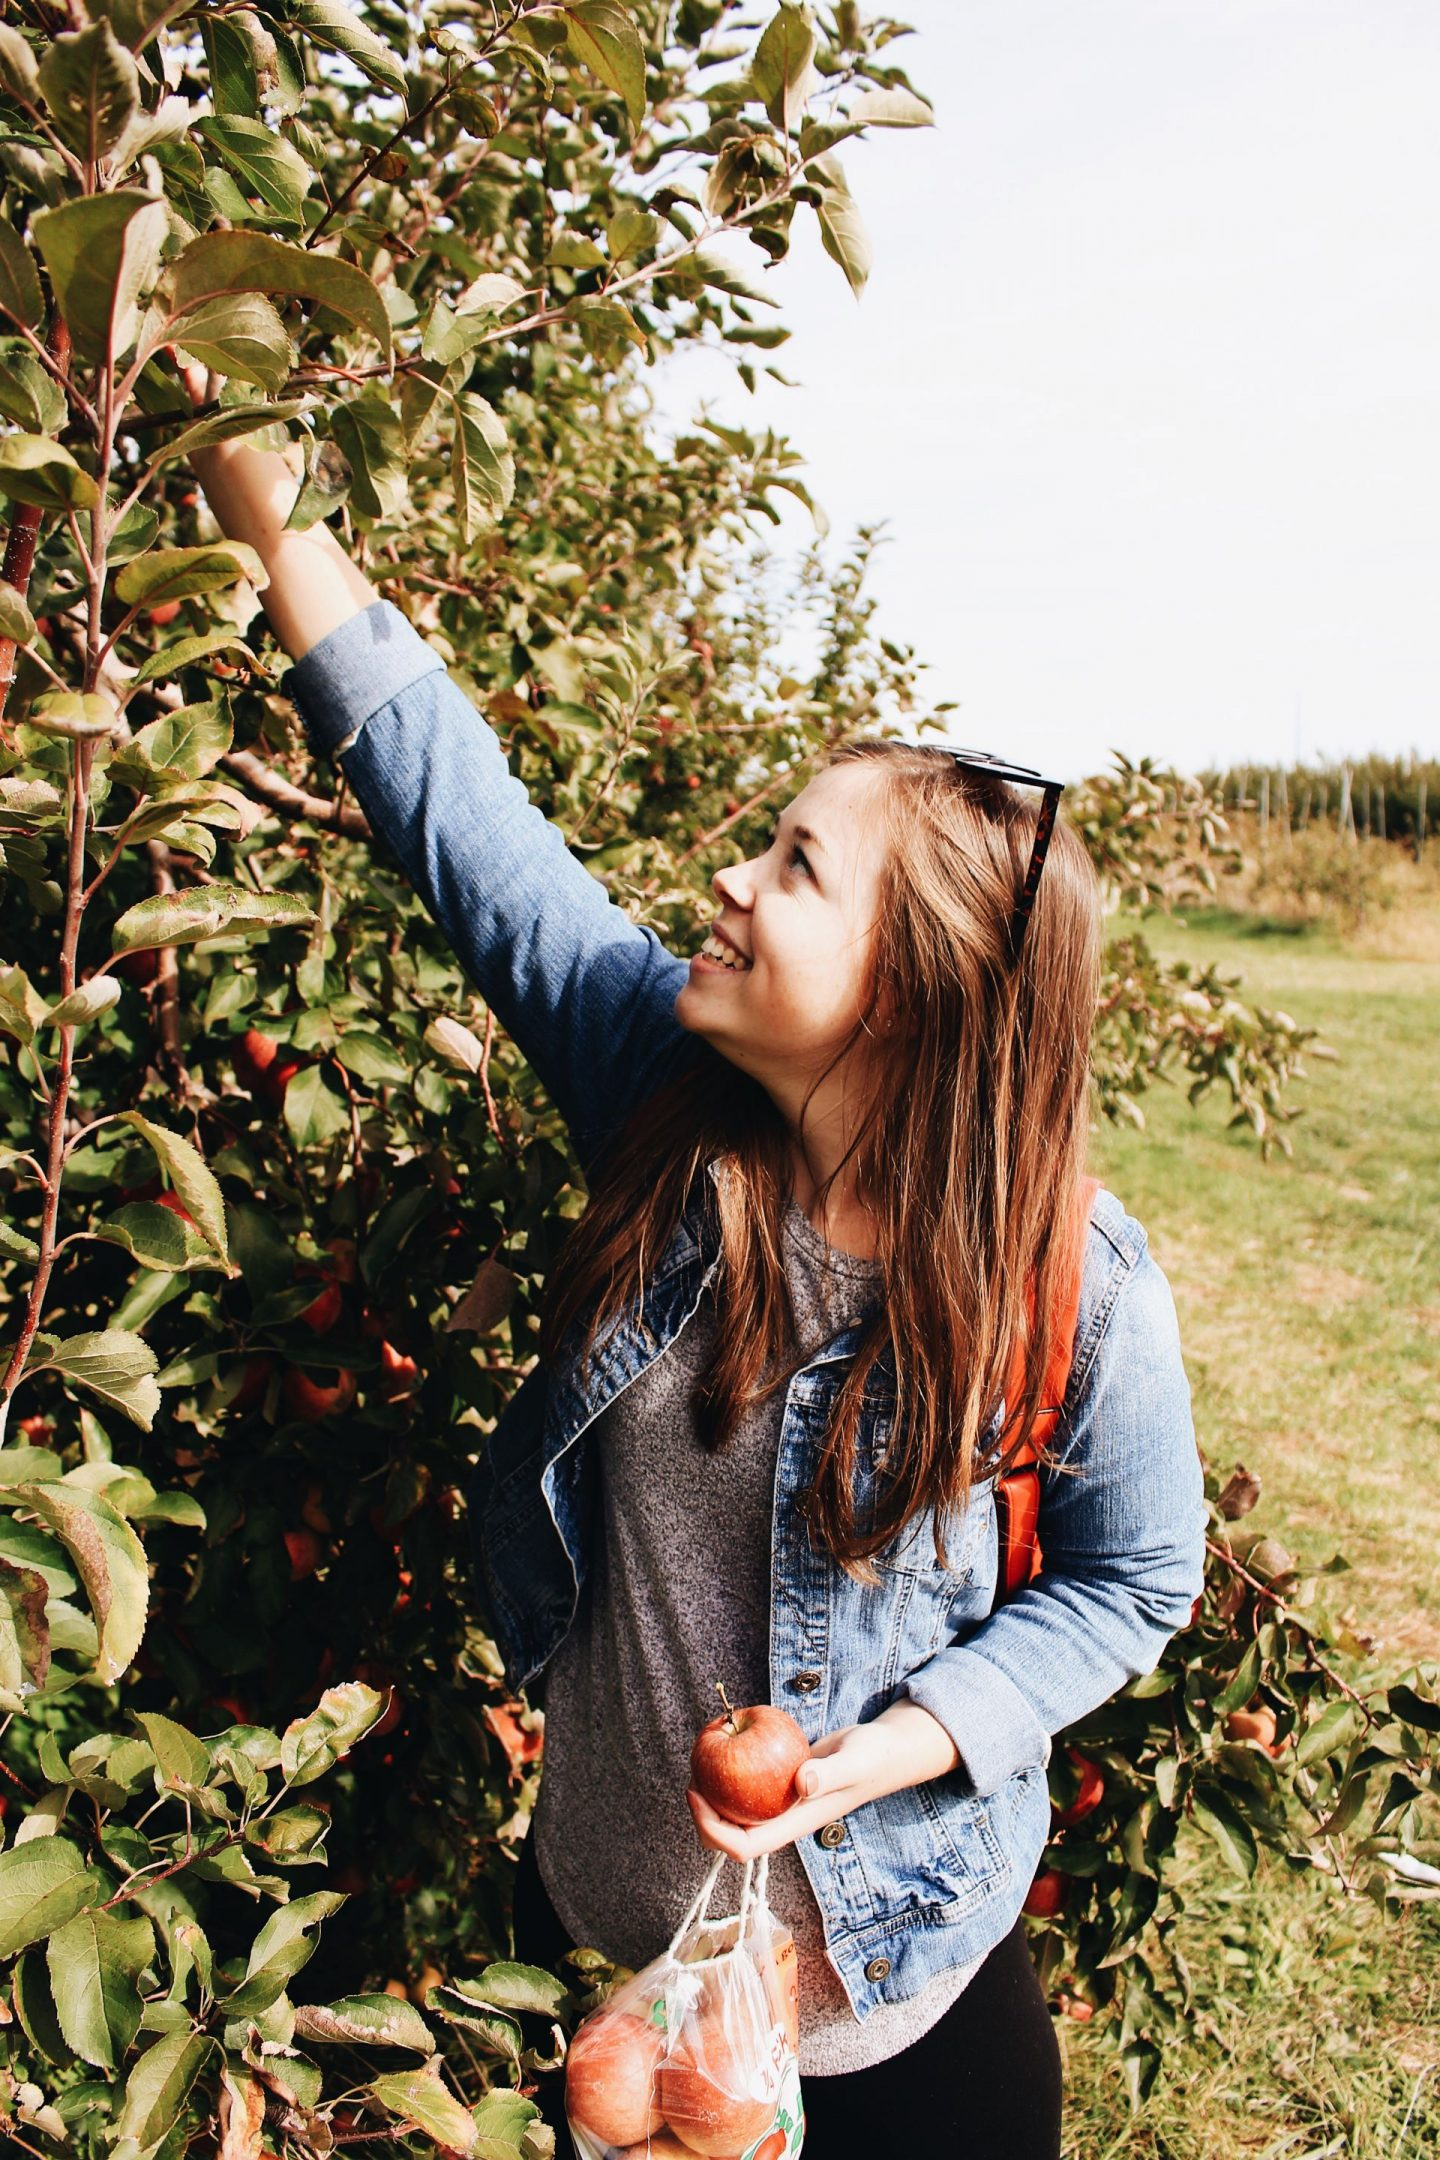 An Afternoon of Apple Picking